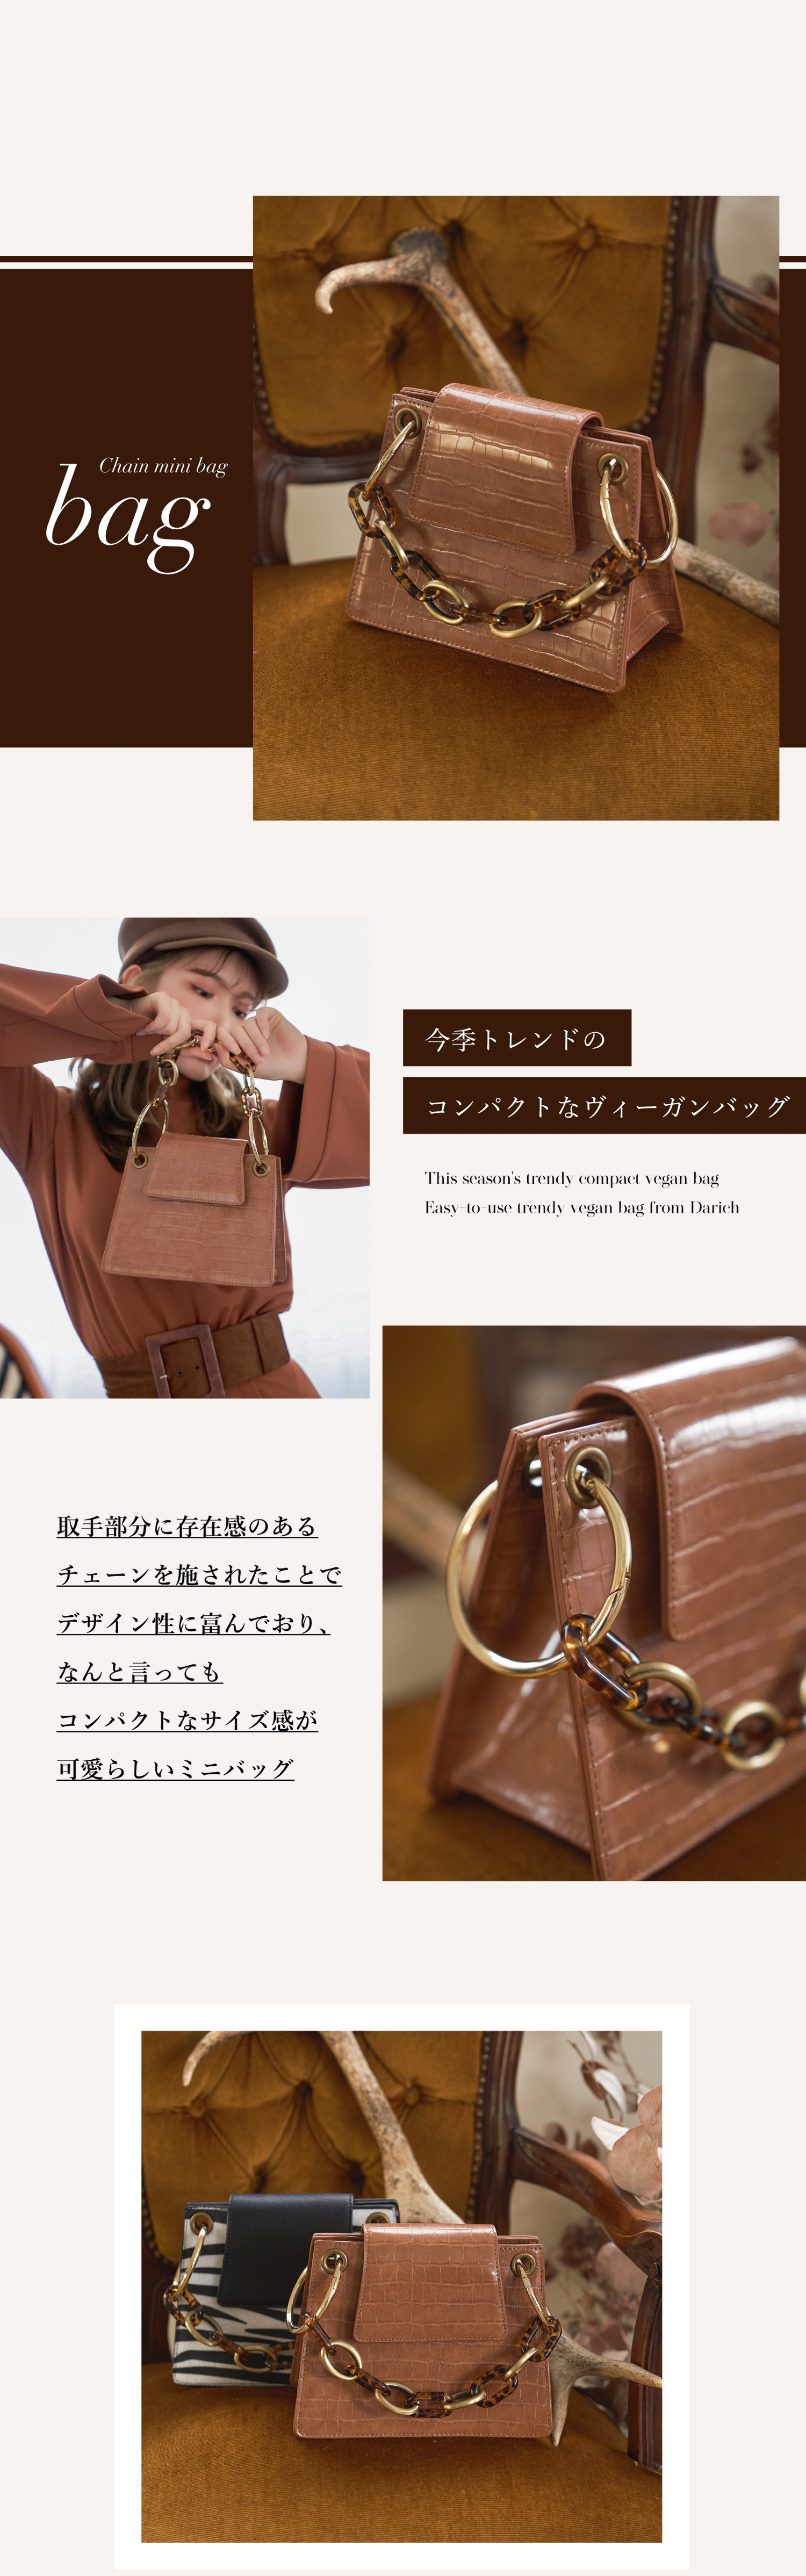 20AW Darich Accessory Collection新作特集2